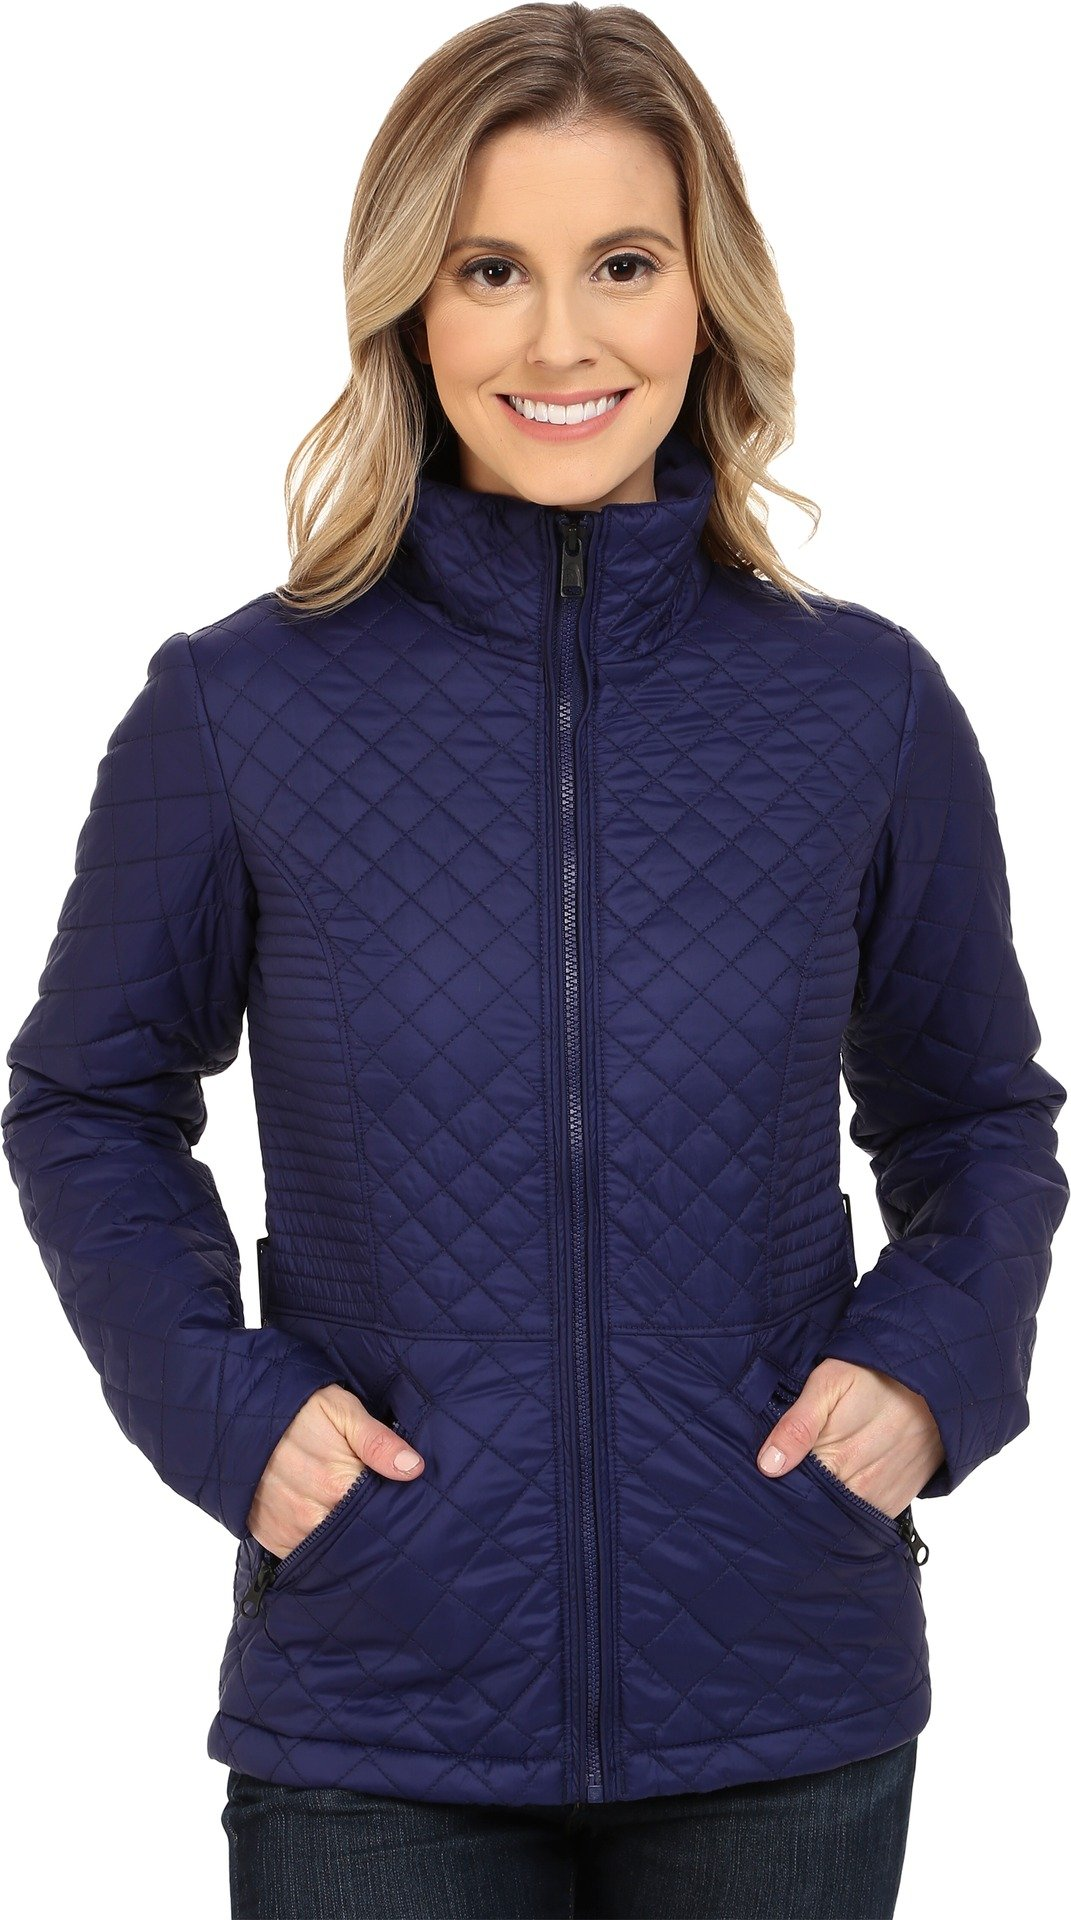 The North Face Women's Insulated Luna Jacket Patriot Blue MD